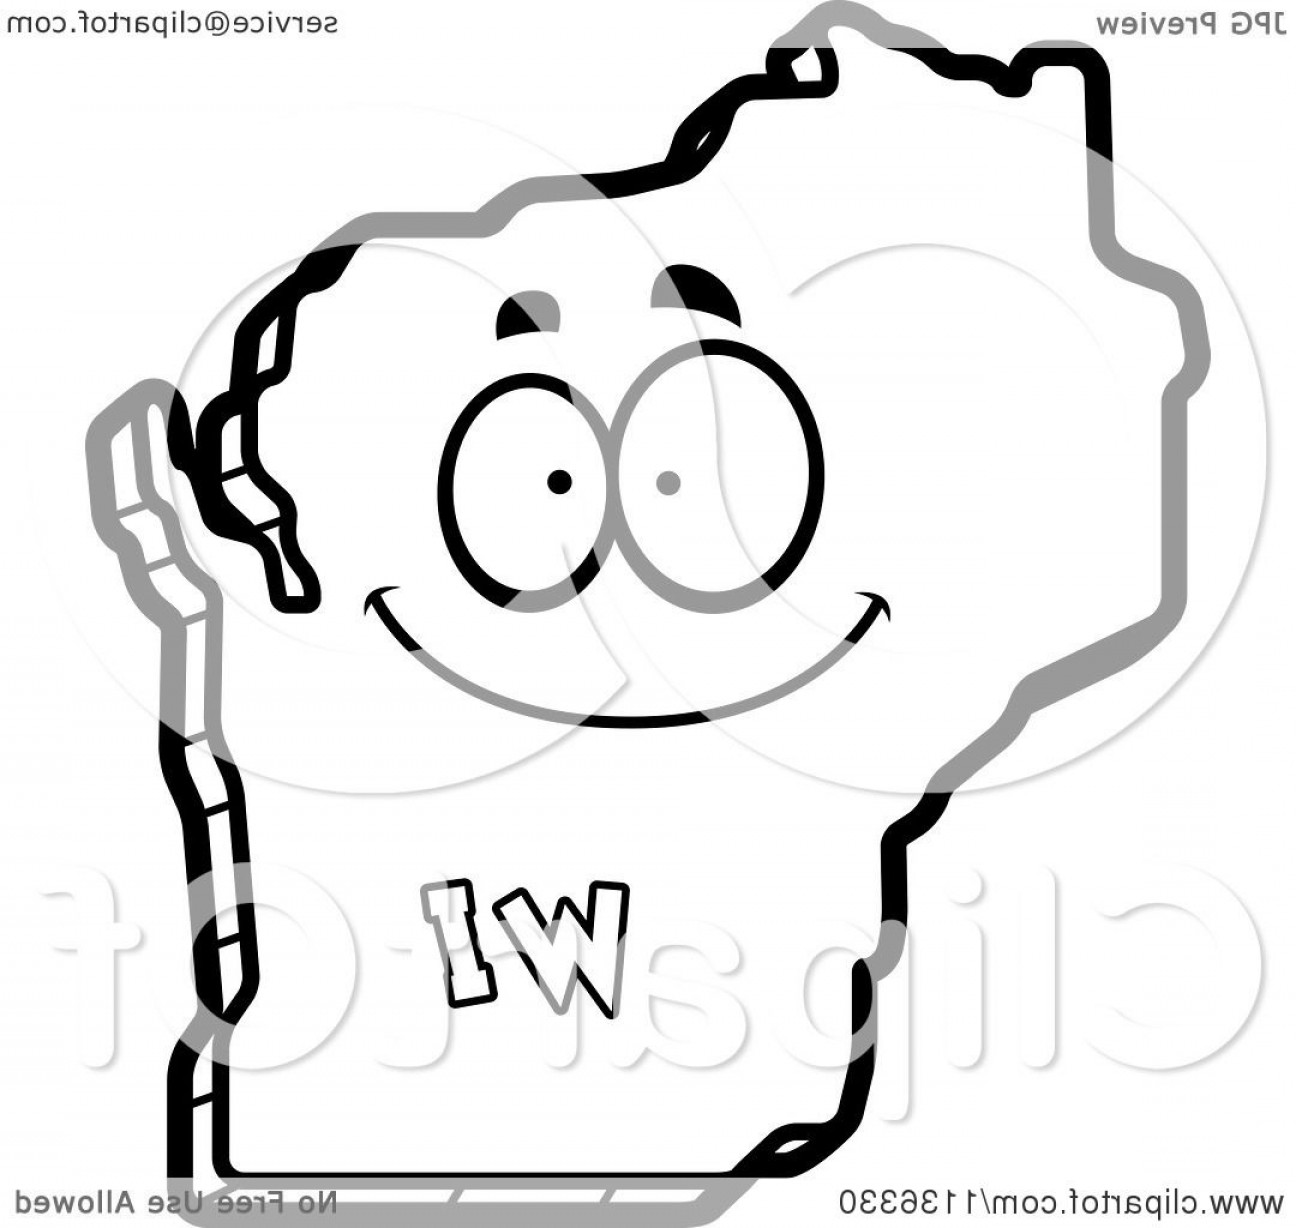 1296x1228 Outlined Happy Wisconsin State Character Lazttweet